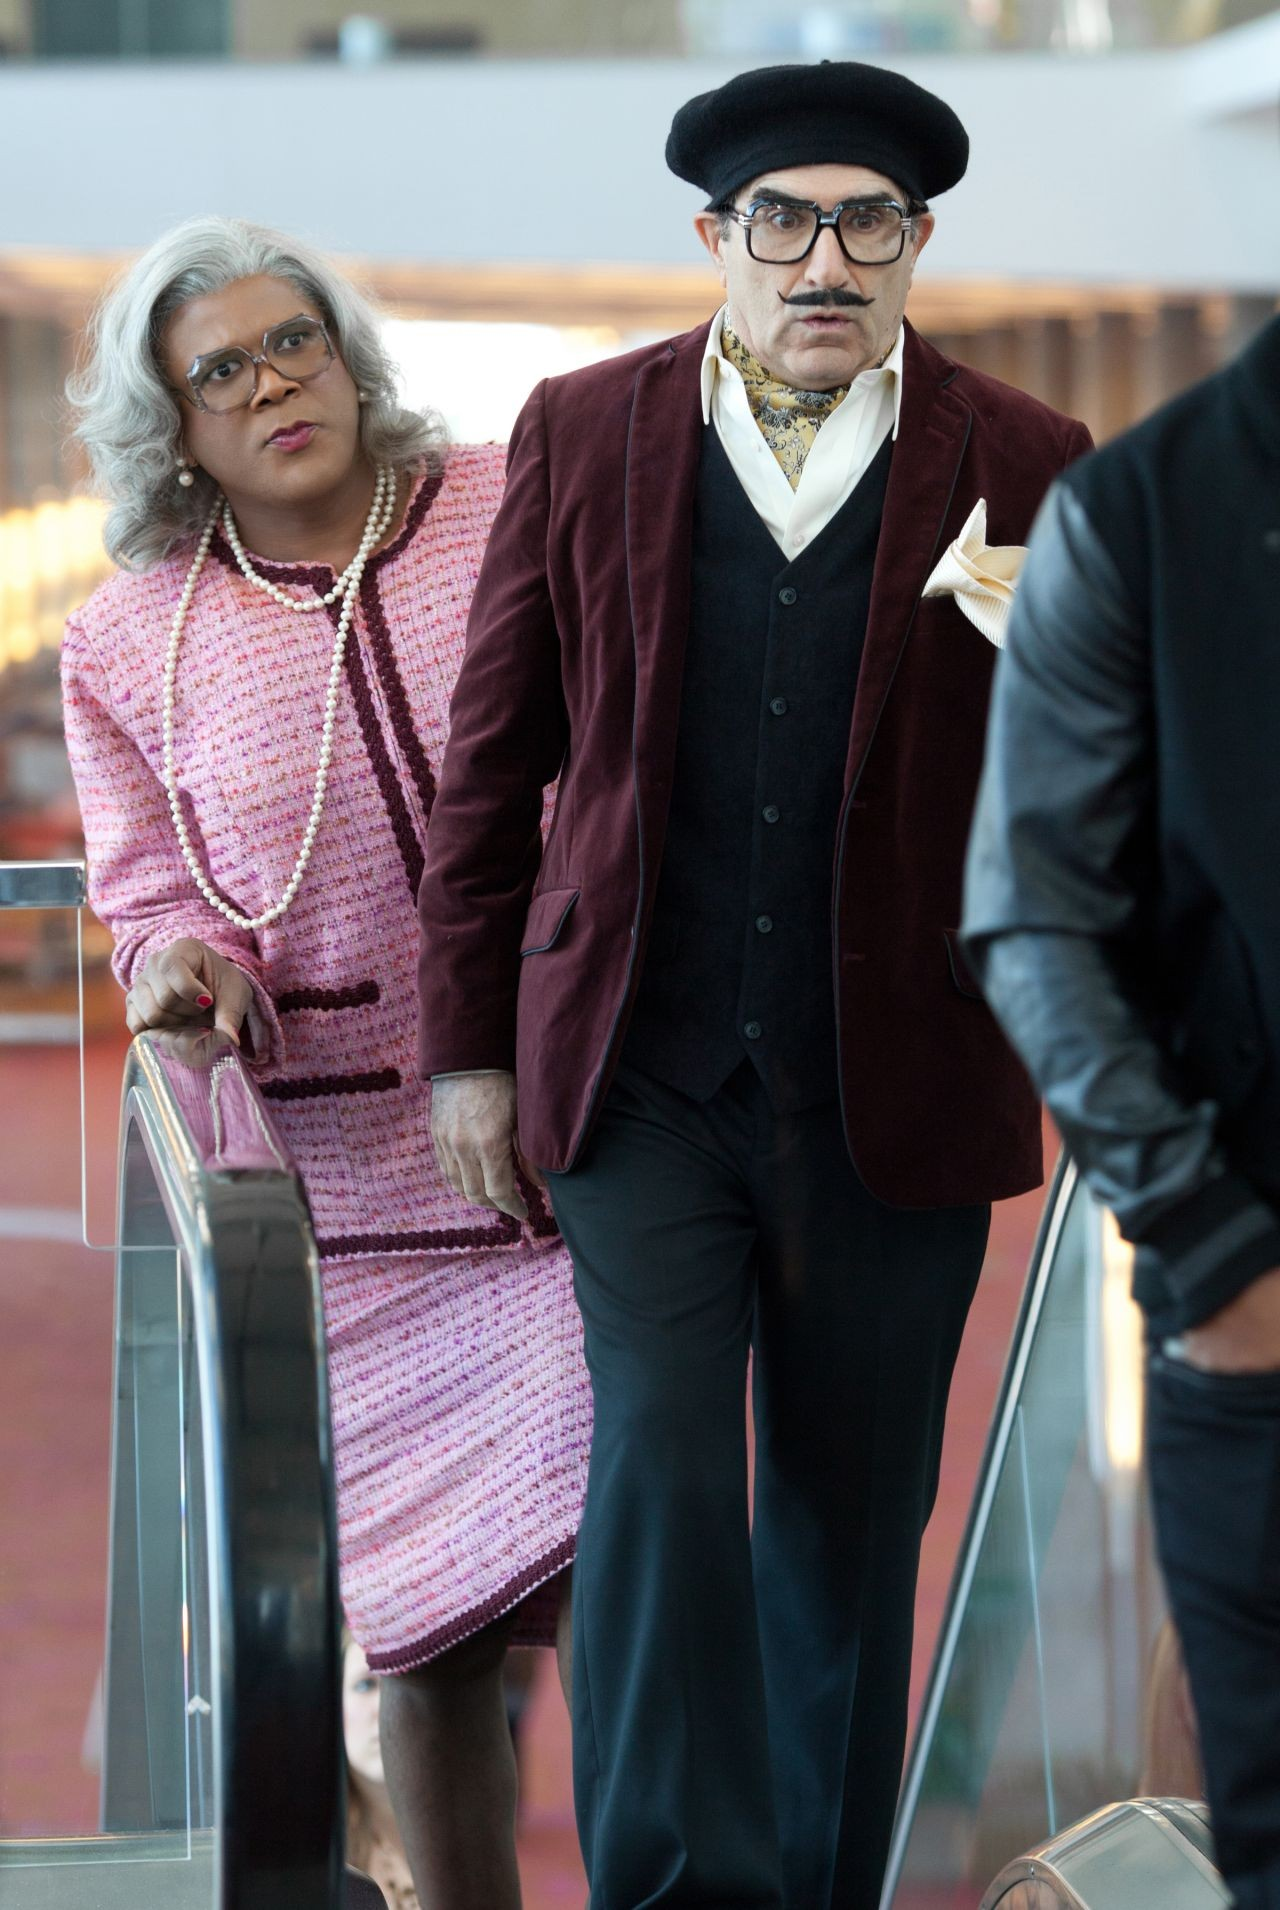 Tyler Perry stars as Madea/Joe/Brian and Eugene Levy stars as George Needleman in Lionsgate's Madea's Witness Protection (2012). Photo credit by KC Bailey.